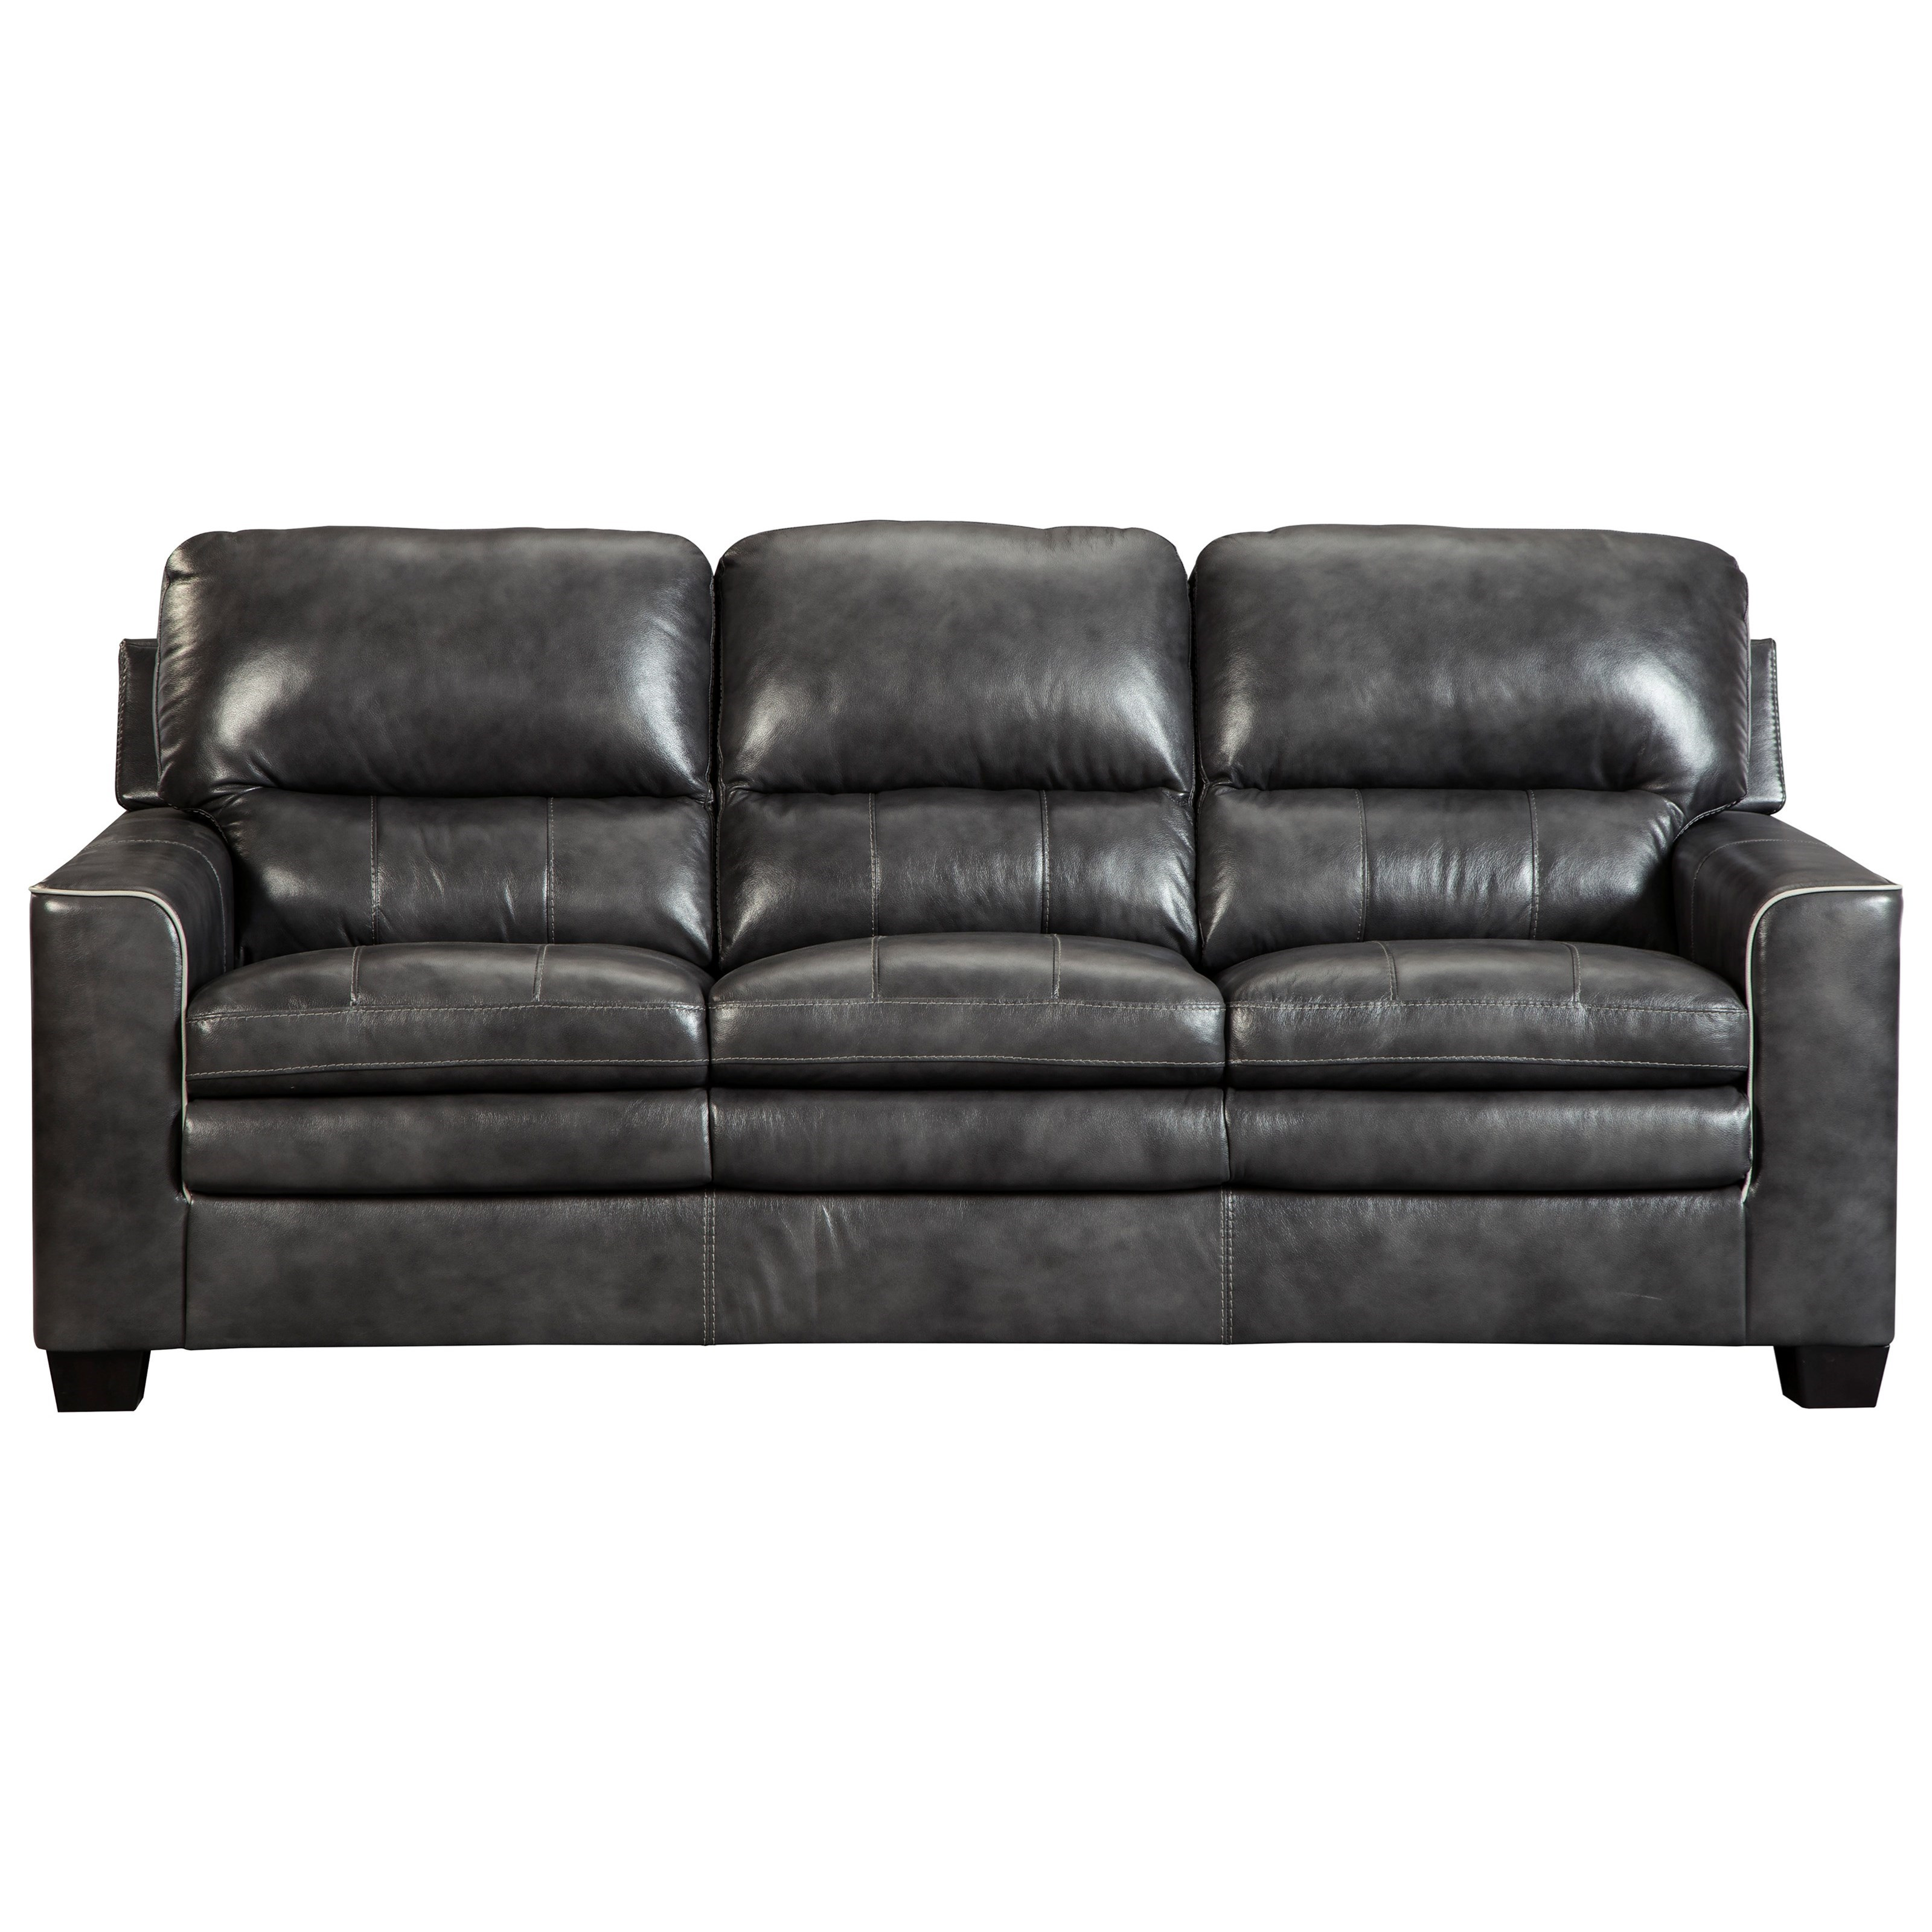 Signature Design by Ashley Gleason Sofa - Item Number: 1570238